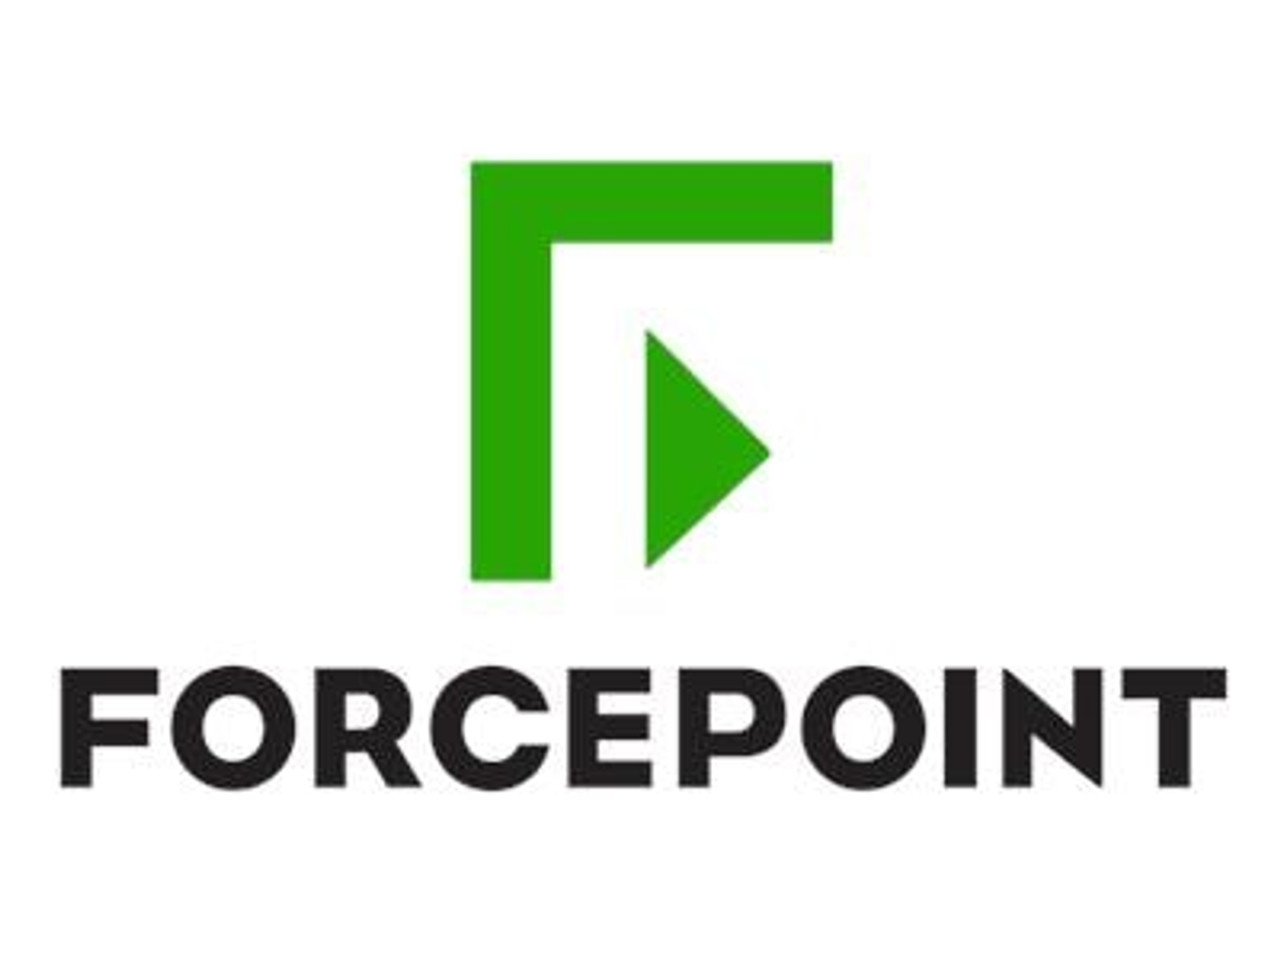 Forcepoint Insider Threat Implementation - Basic